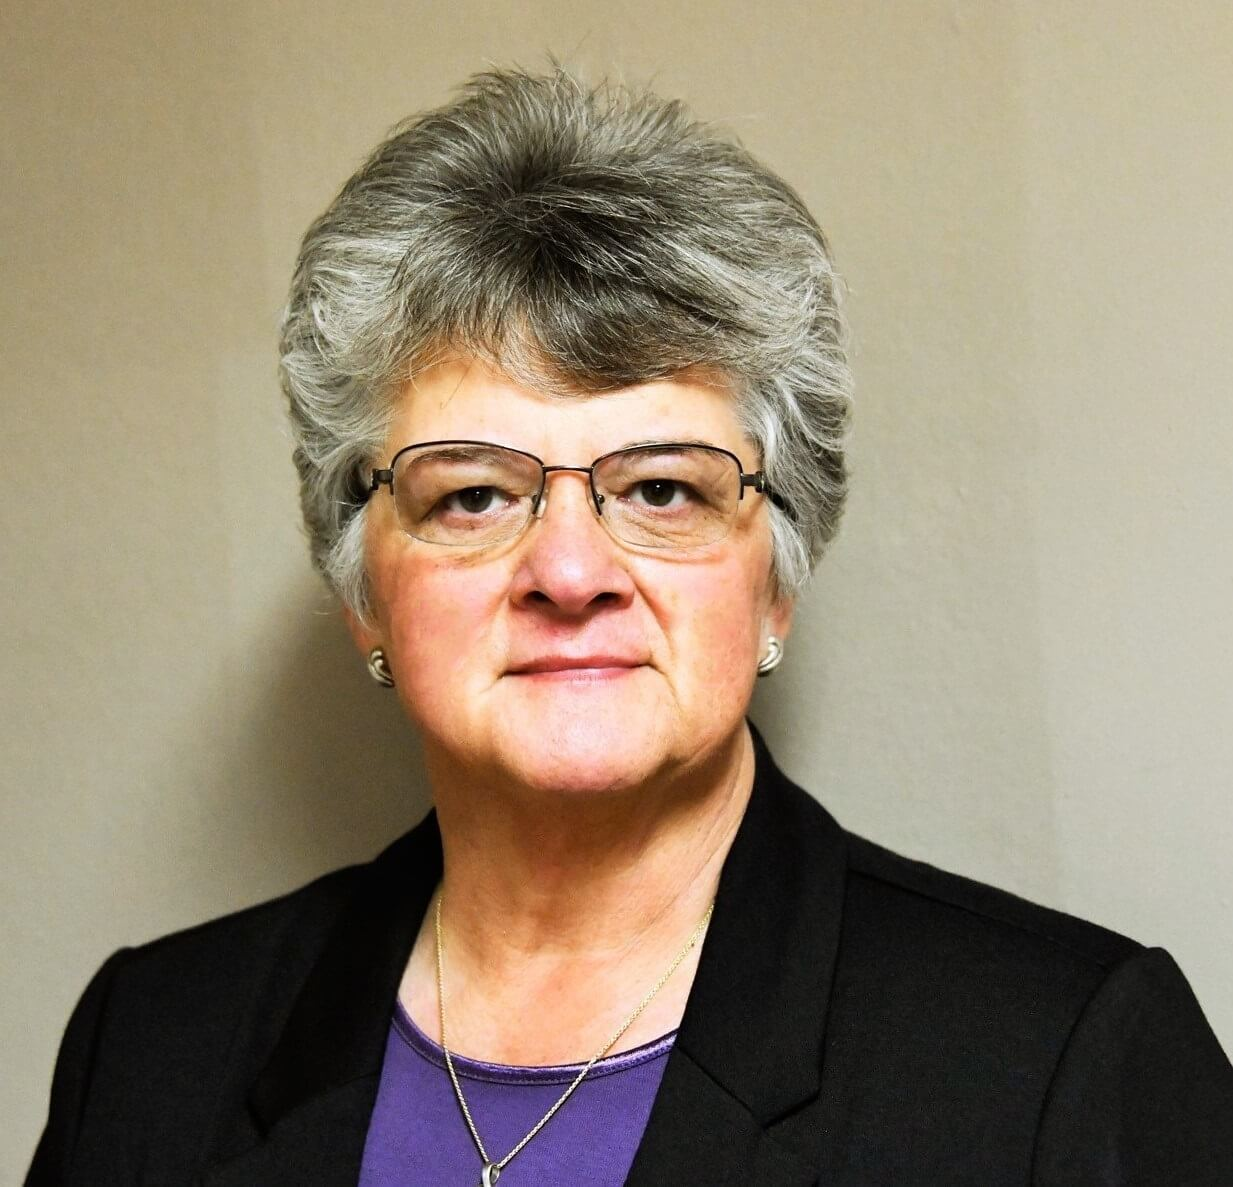 Benchmark names new Director of Human Resources at Stonewall Resort, Roanoke, WV